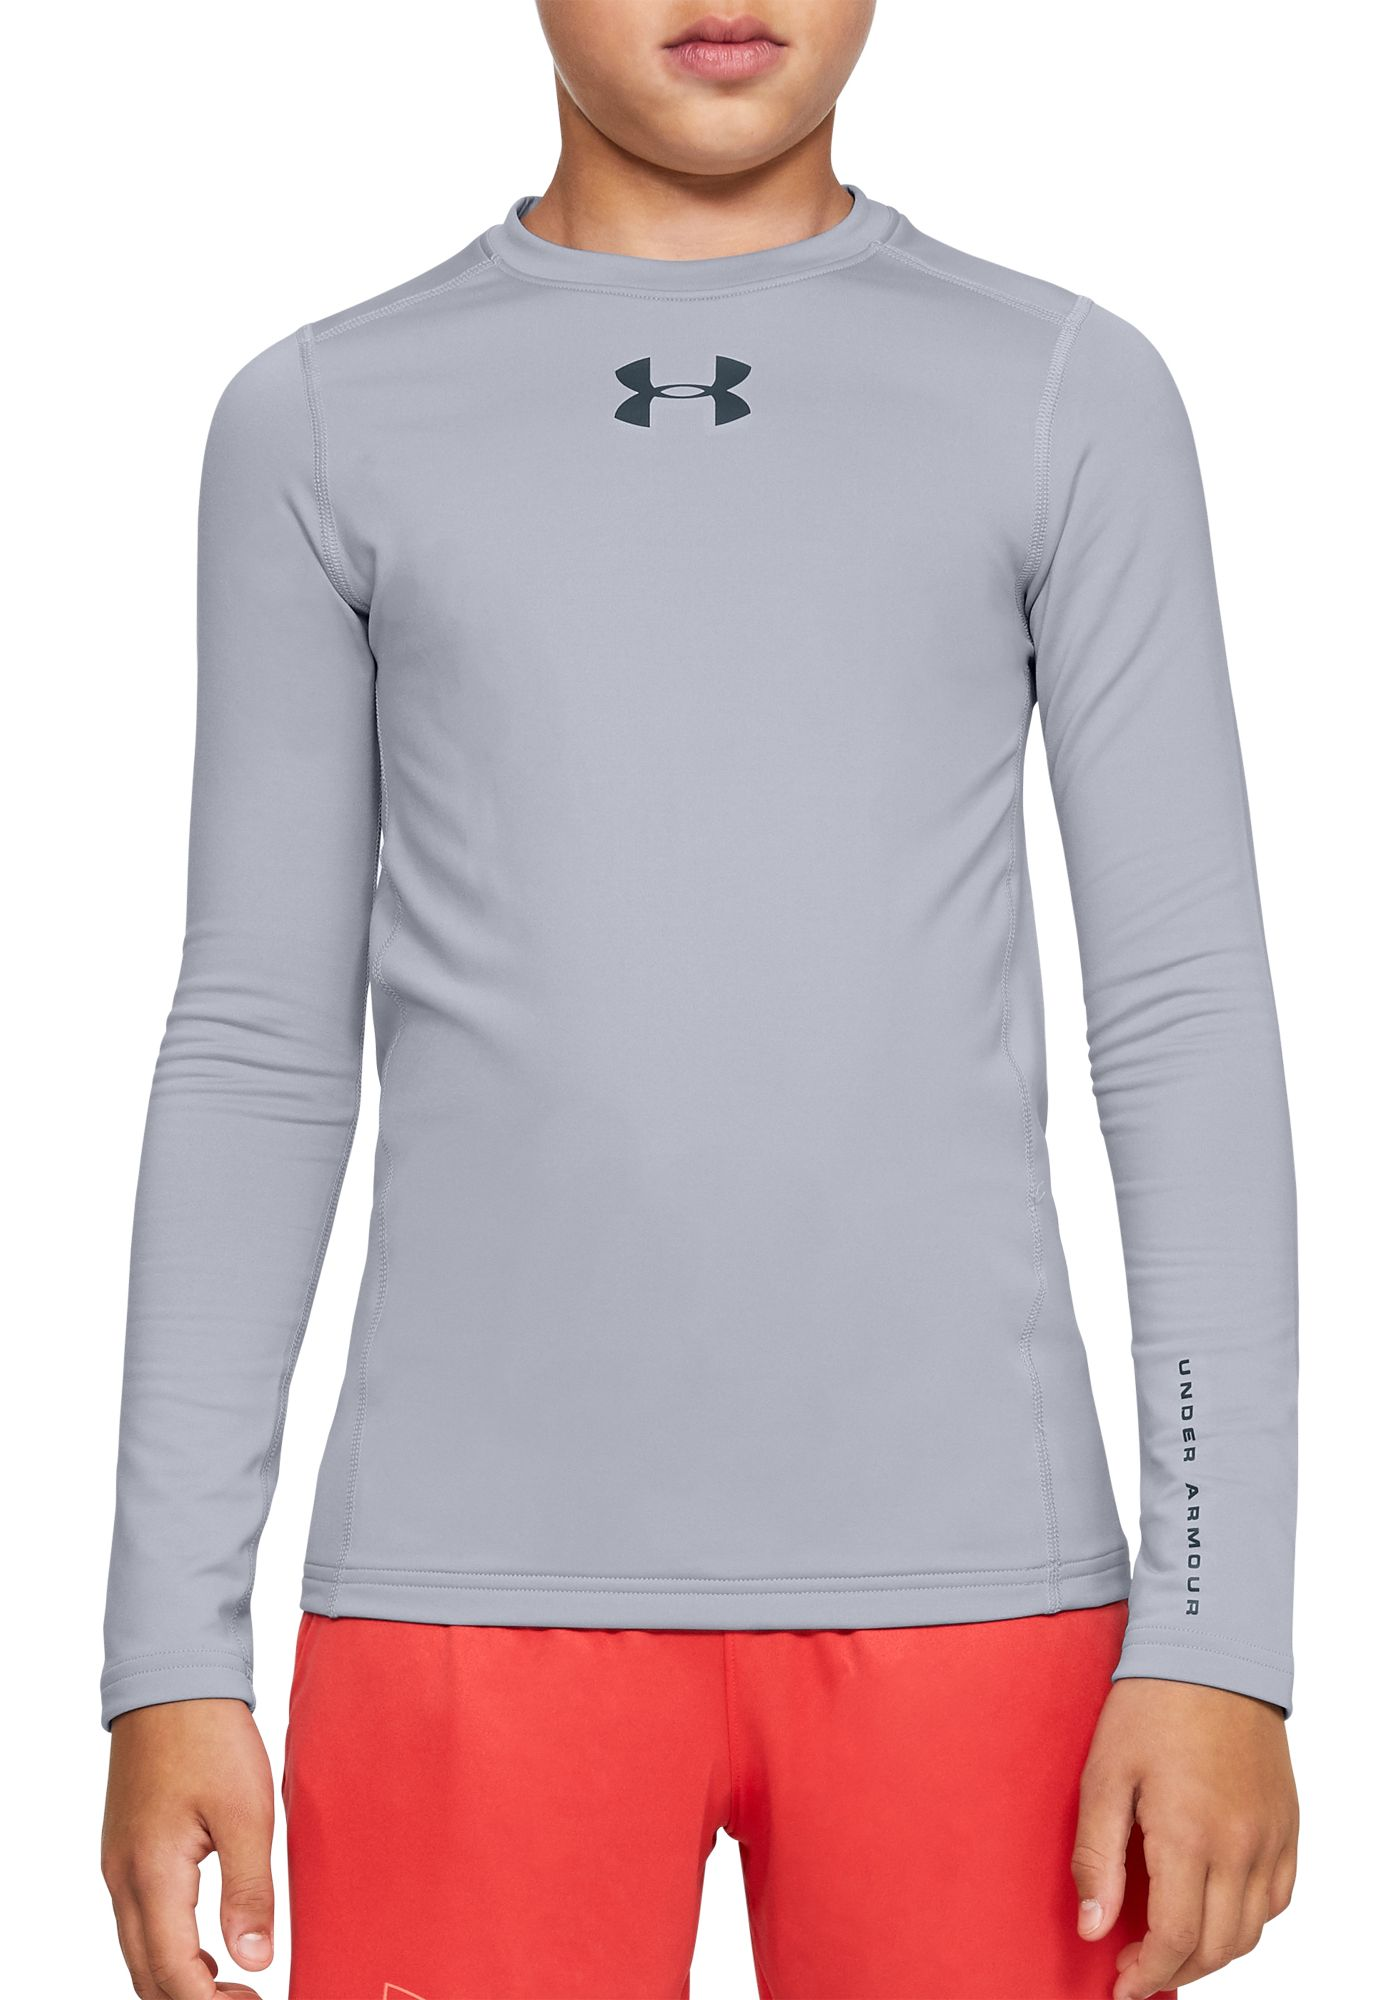 Under Armour Boy's ColdGear Armour Long Sleeve Shirt